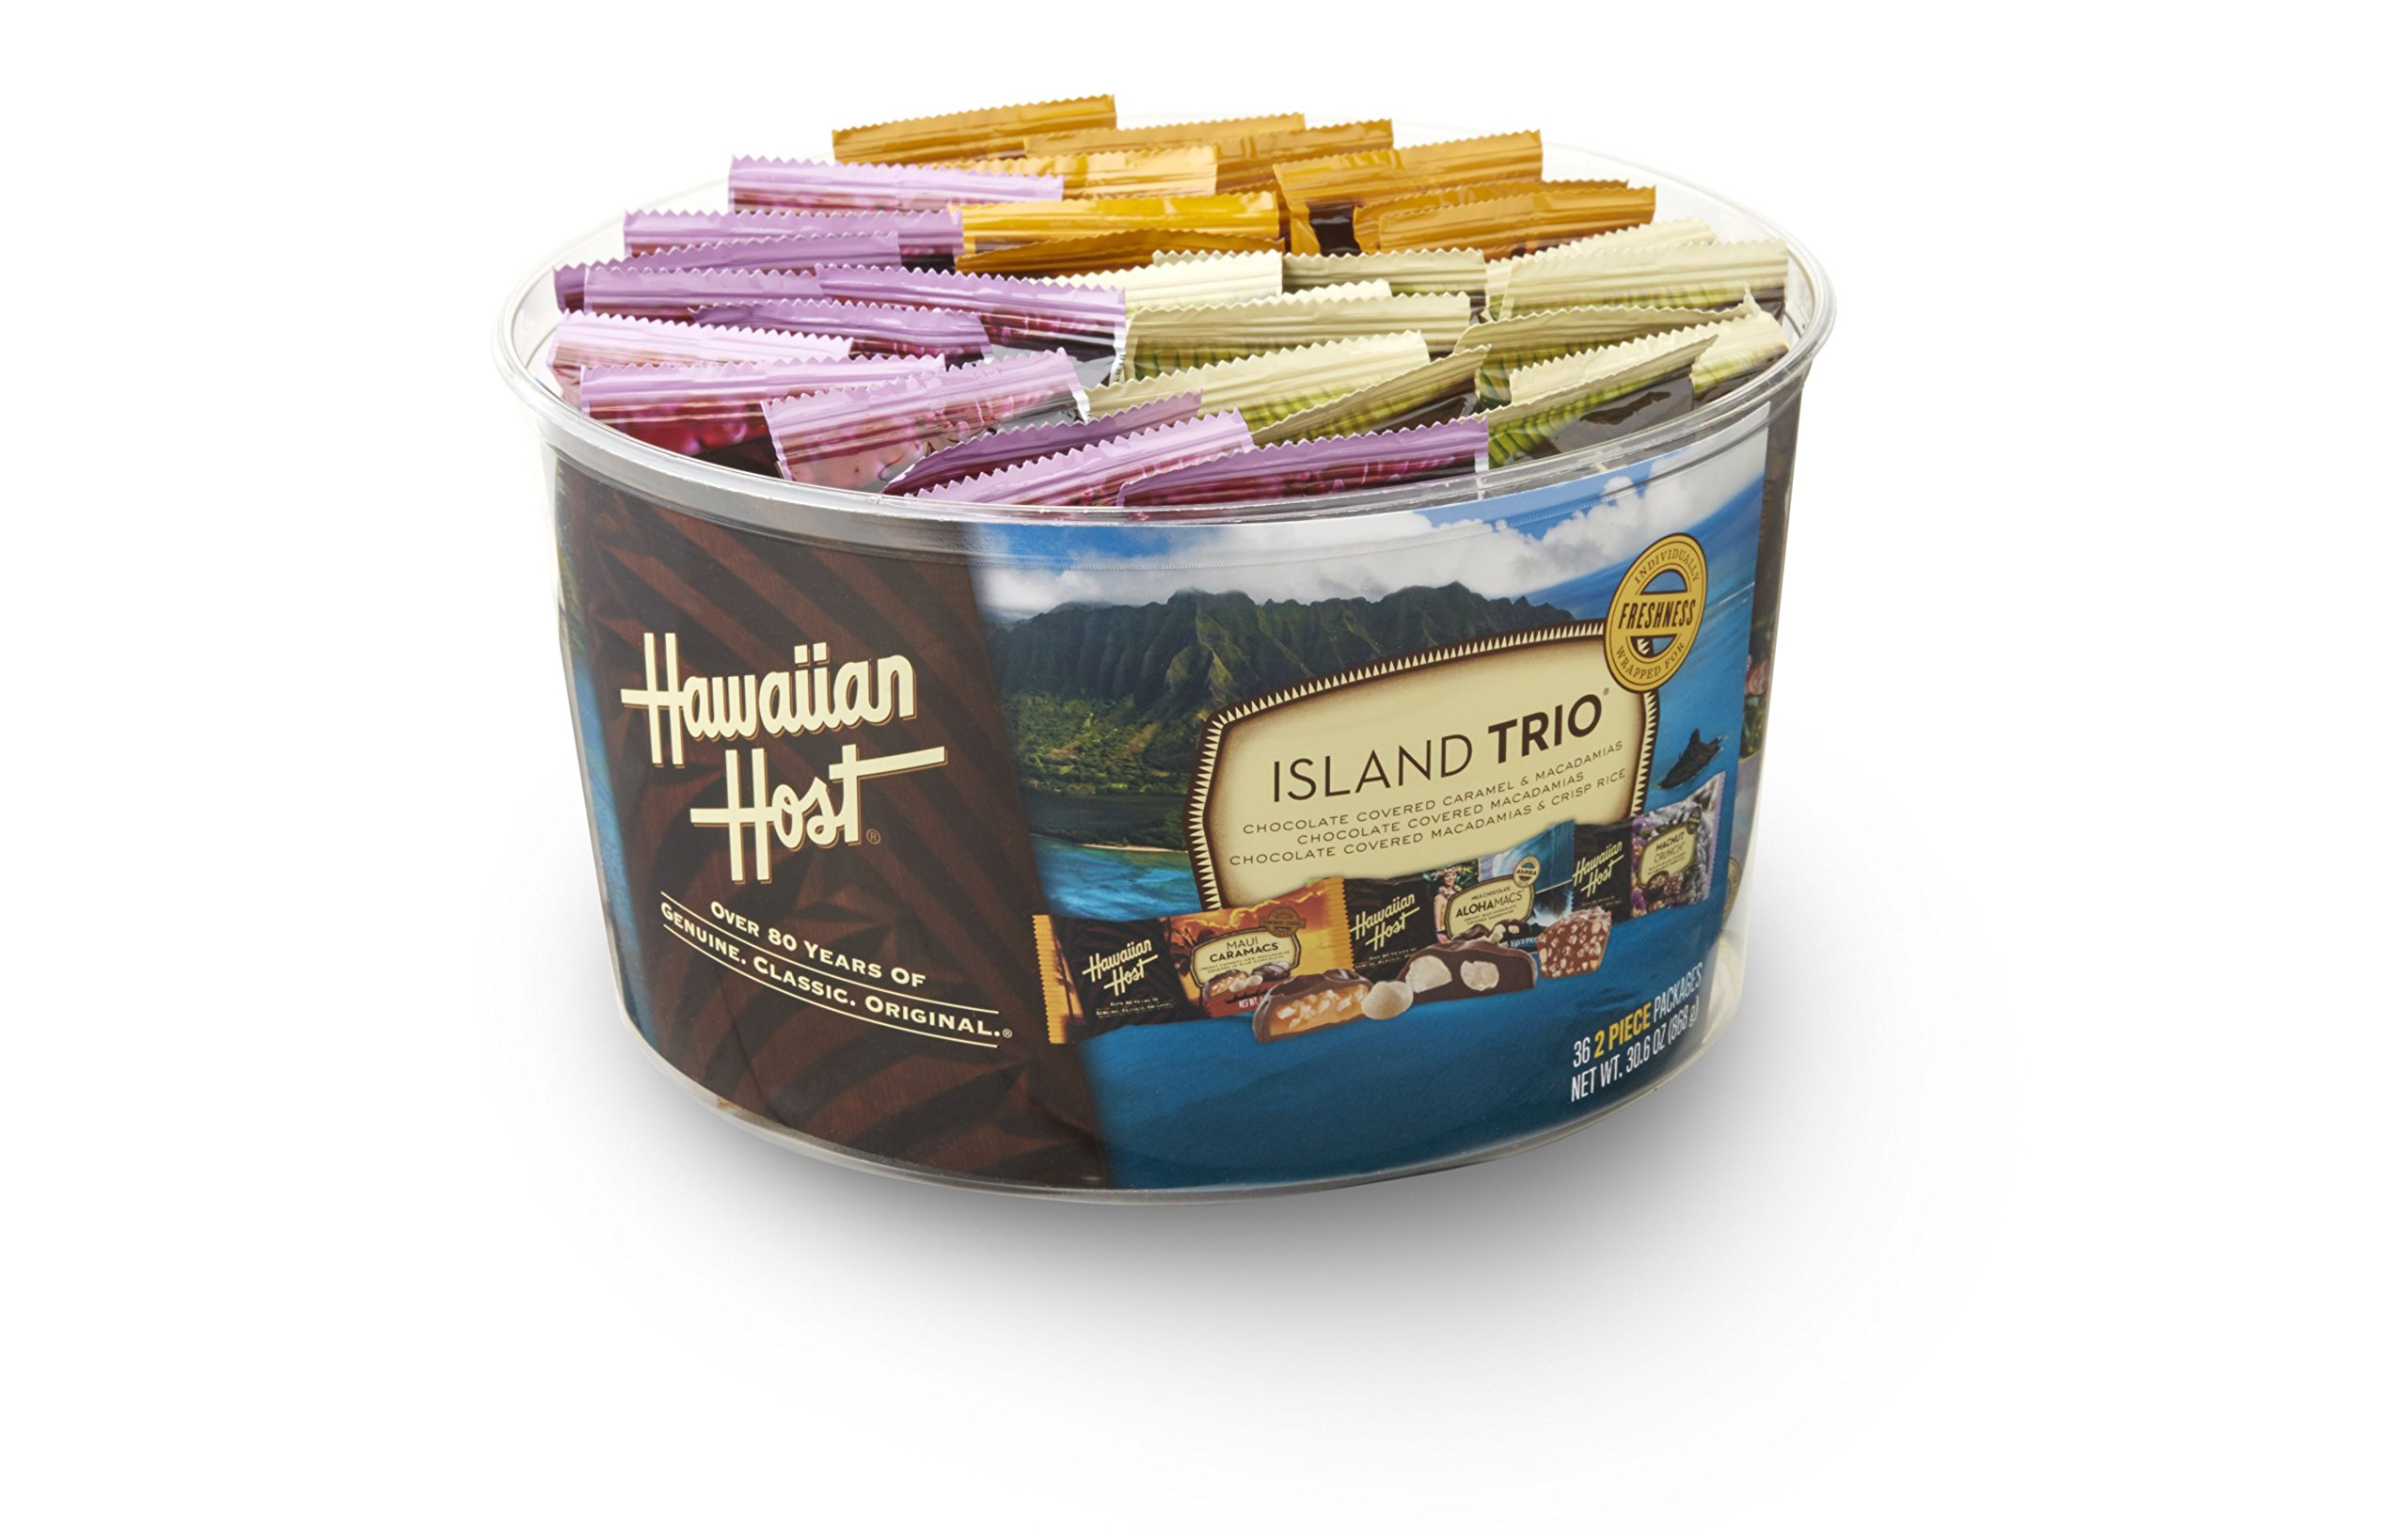 Hawaiian Host Island Trio Gift Pack 36 Count Chocolate and Macadamia by Hawaiian Host (Image #1)